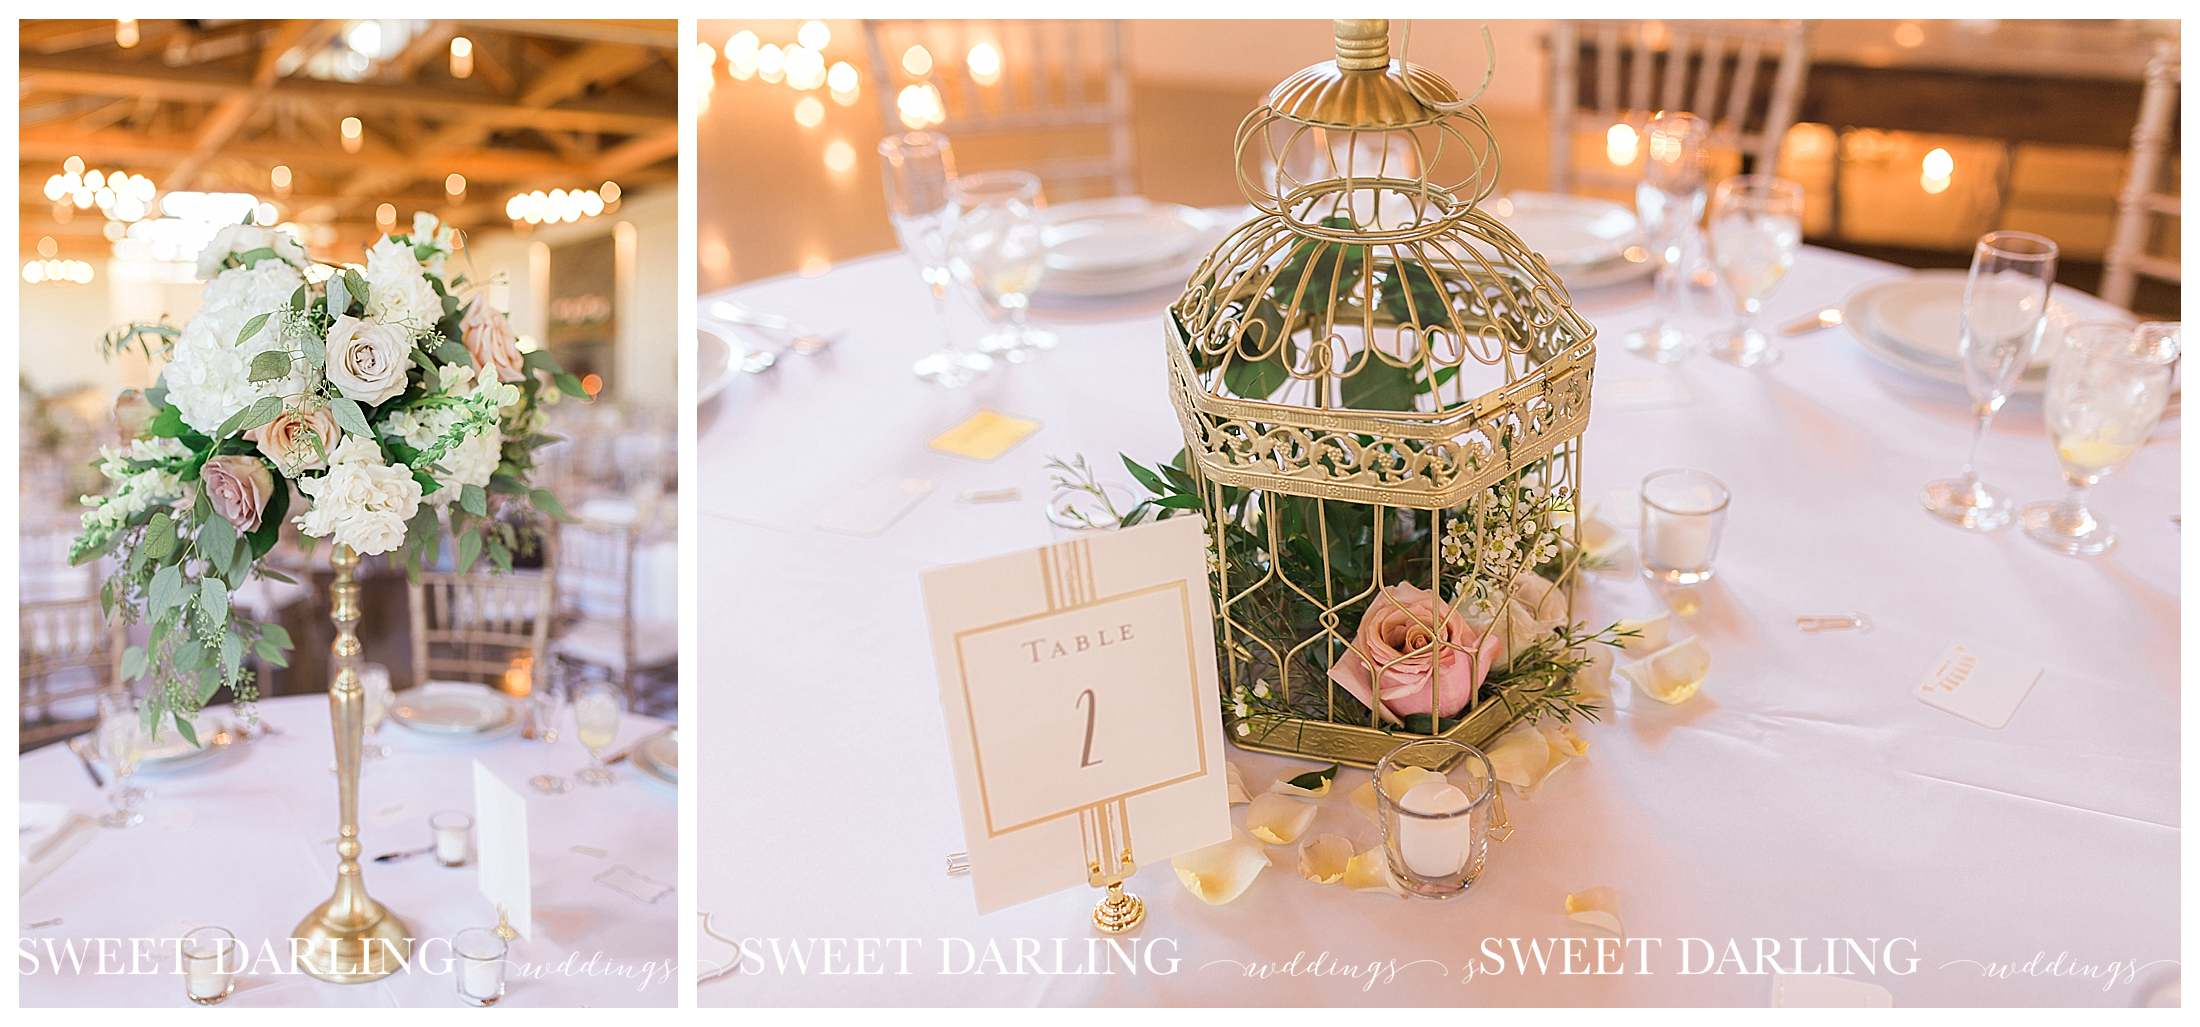 Centerpieces at pear tree estate reception